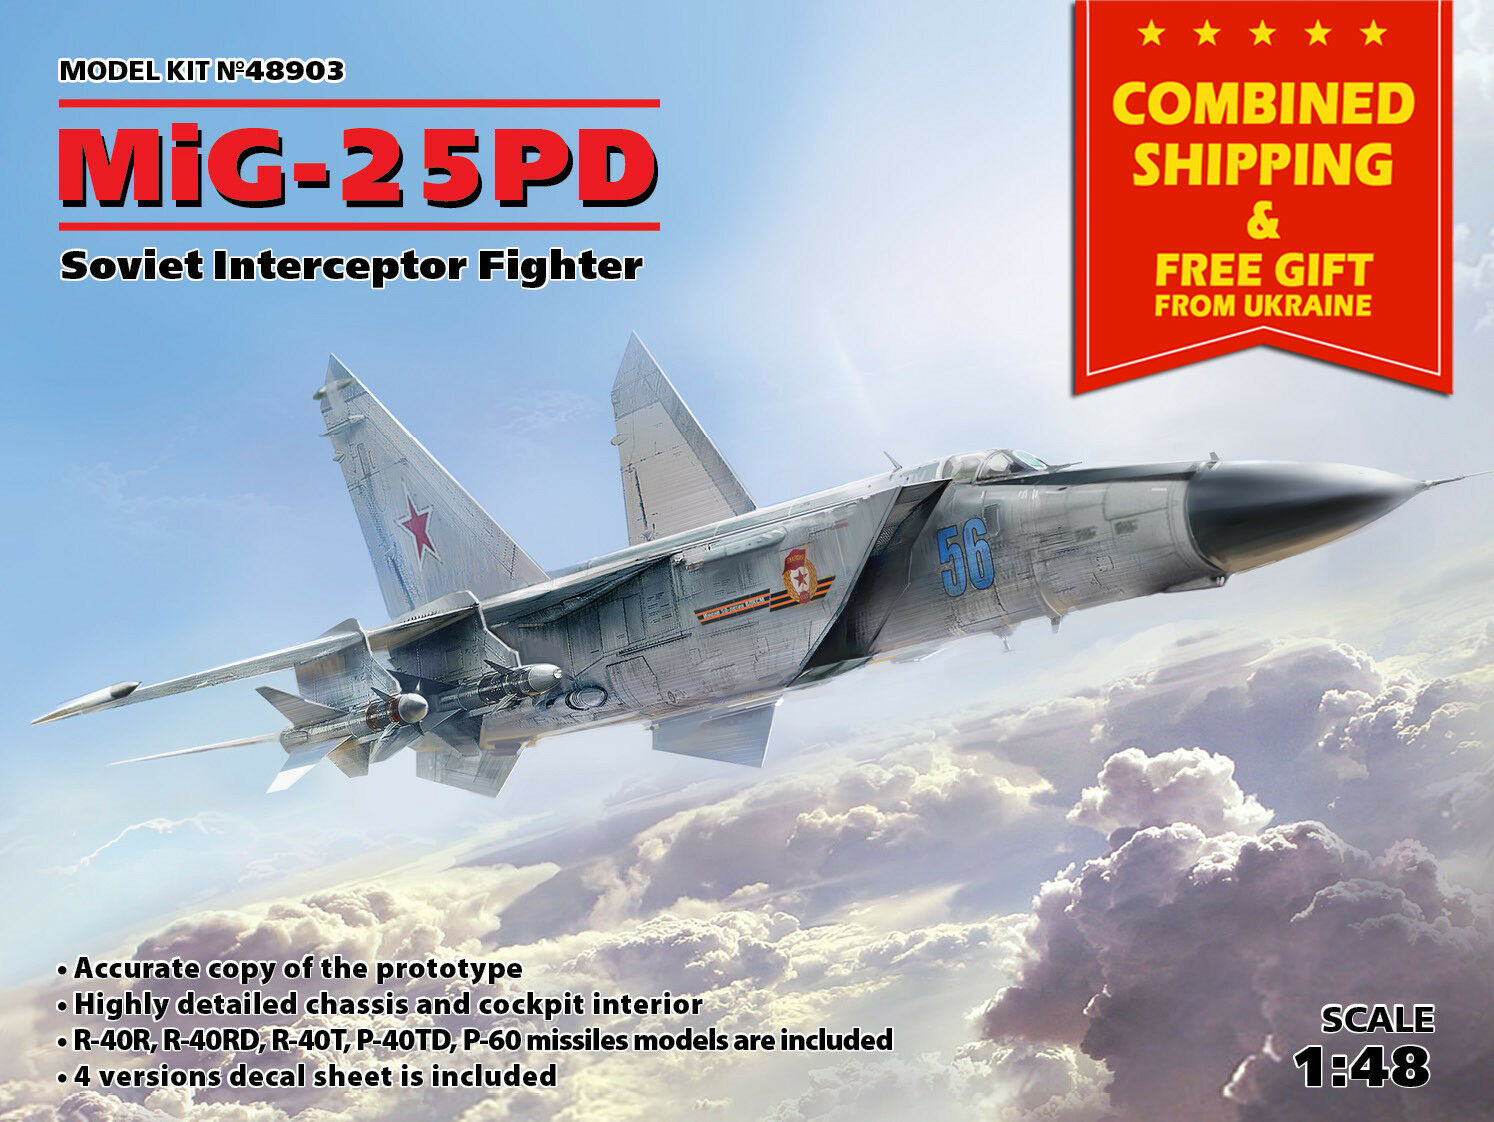 SOVIET INTERCEPTOR FIGHTER MIG-25 PD AIRCRAFT MODEL KIT NEW 1 48 SCALE ICM 48903